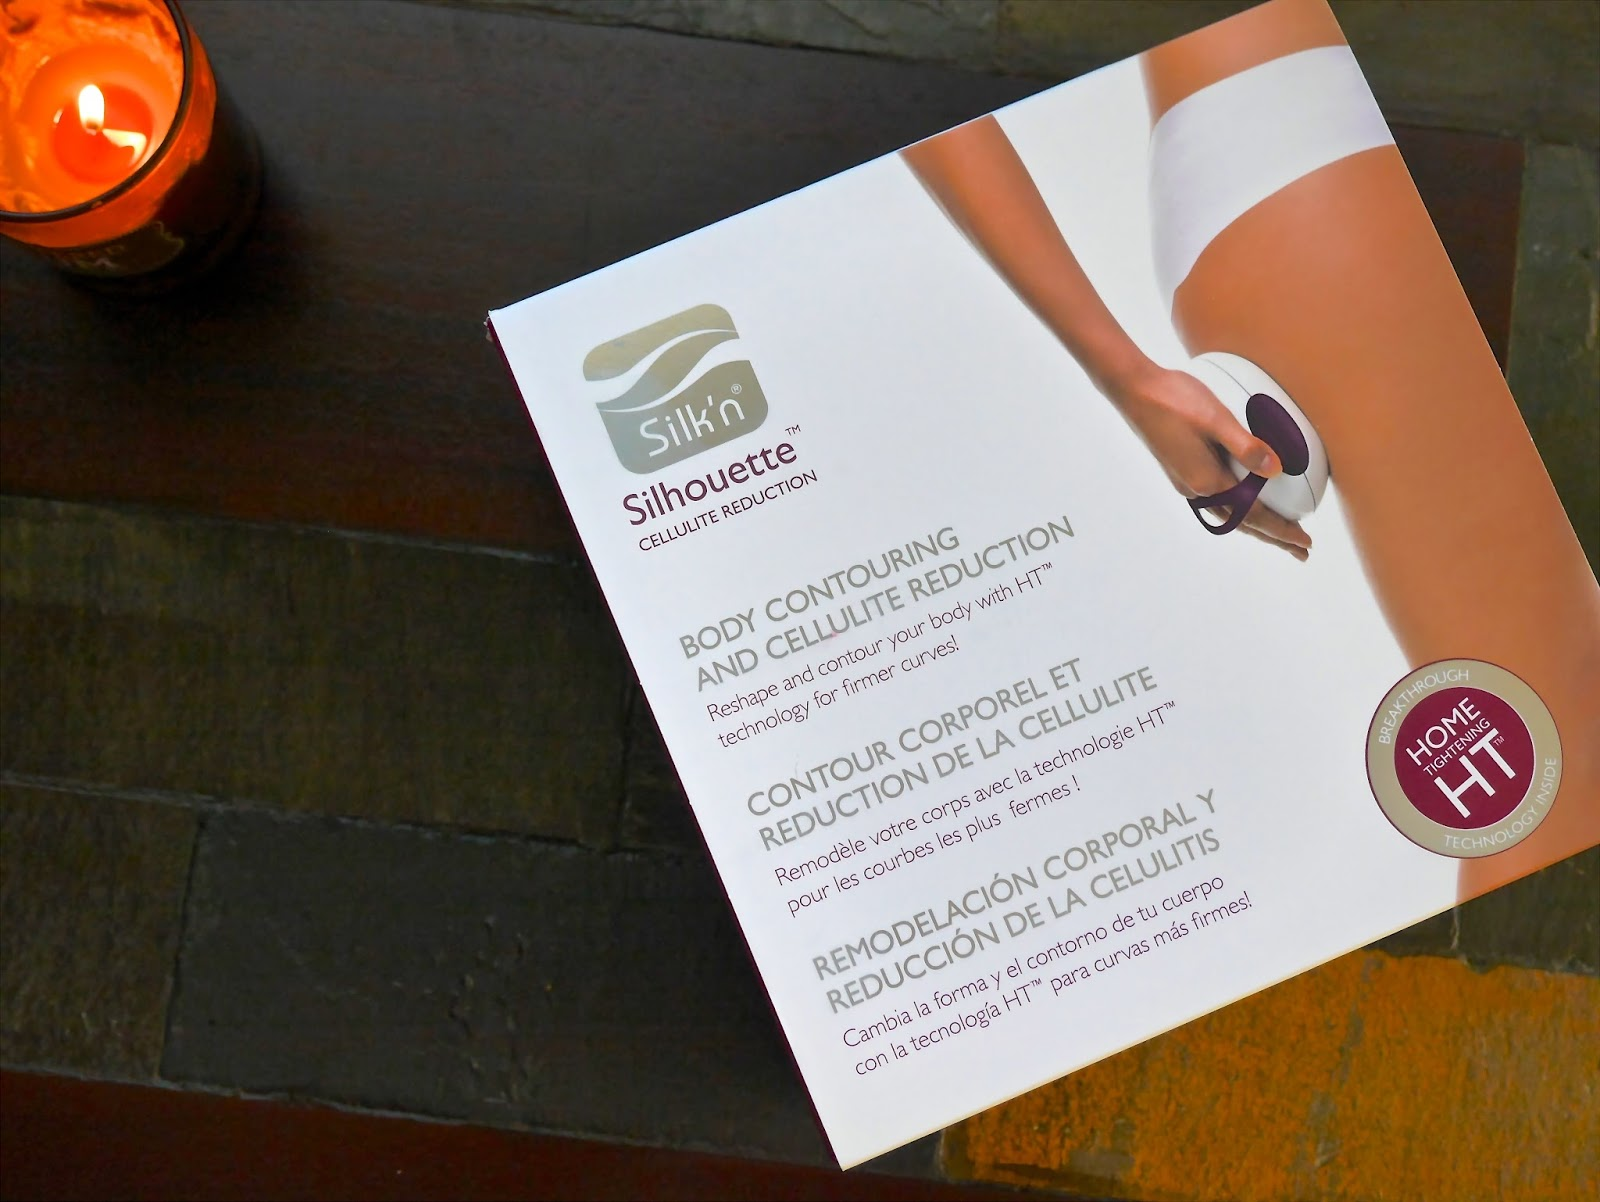 The Ultimate Body Contouring System